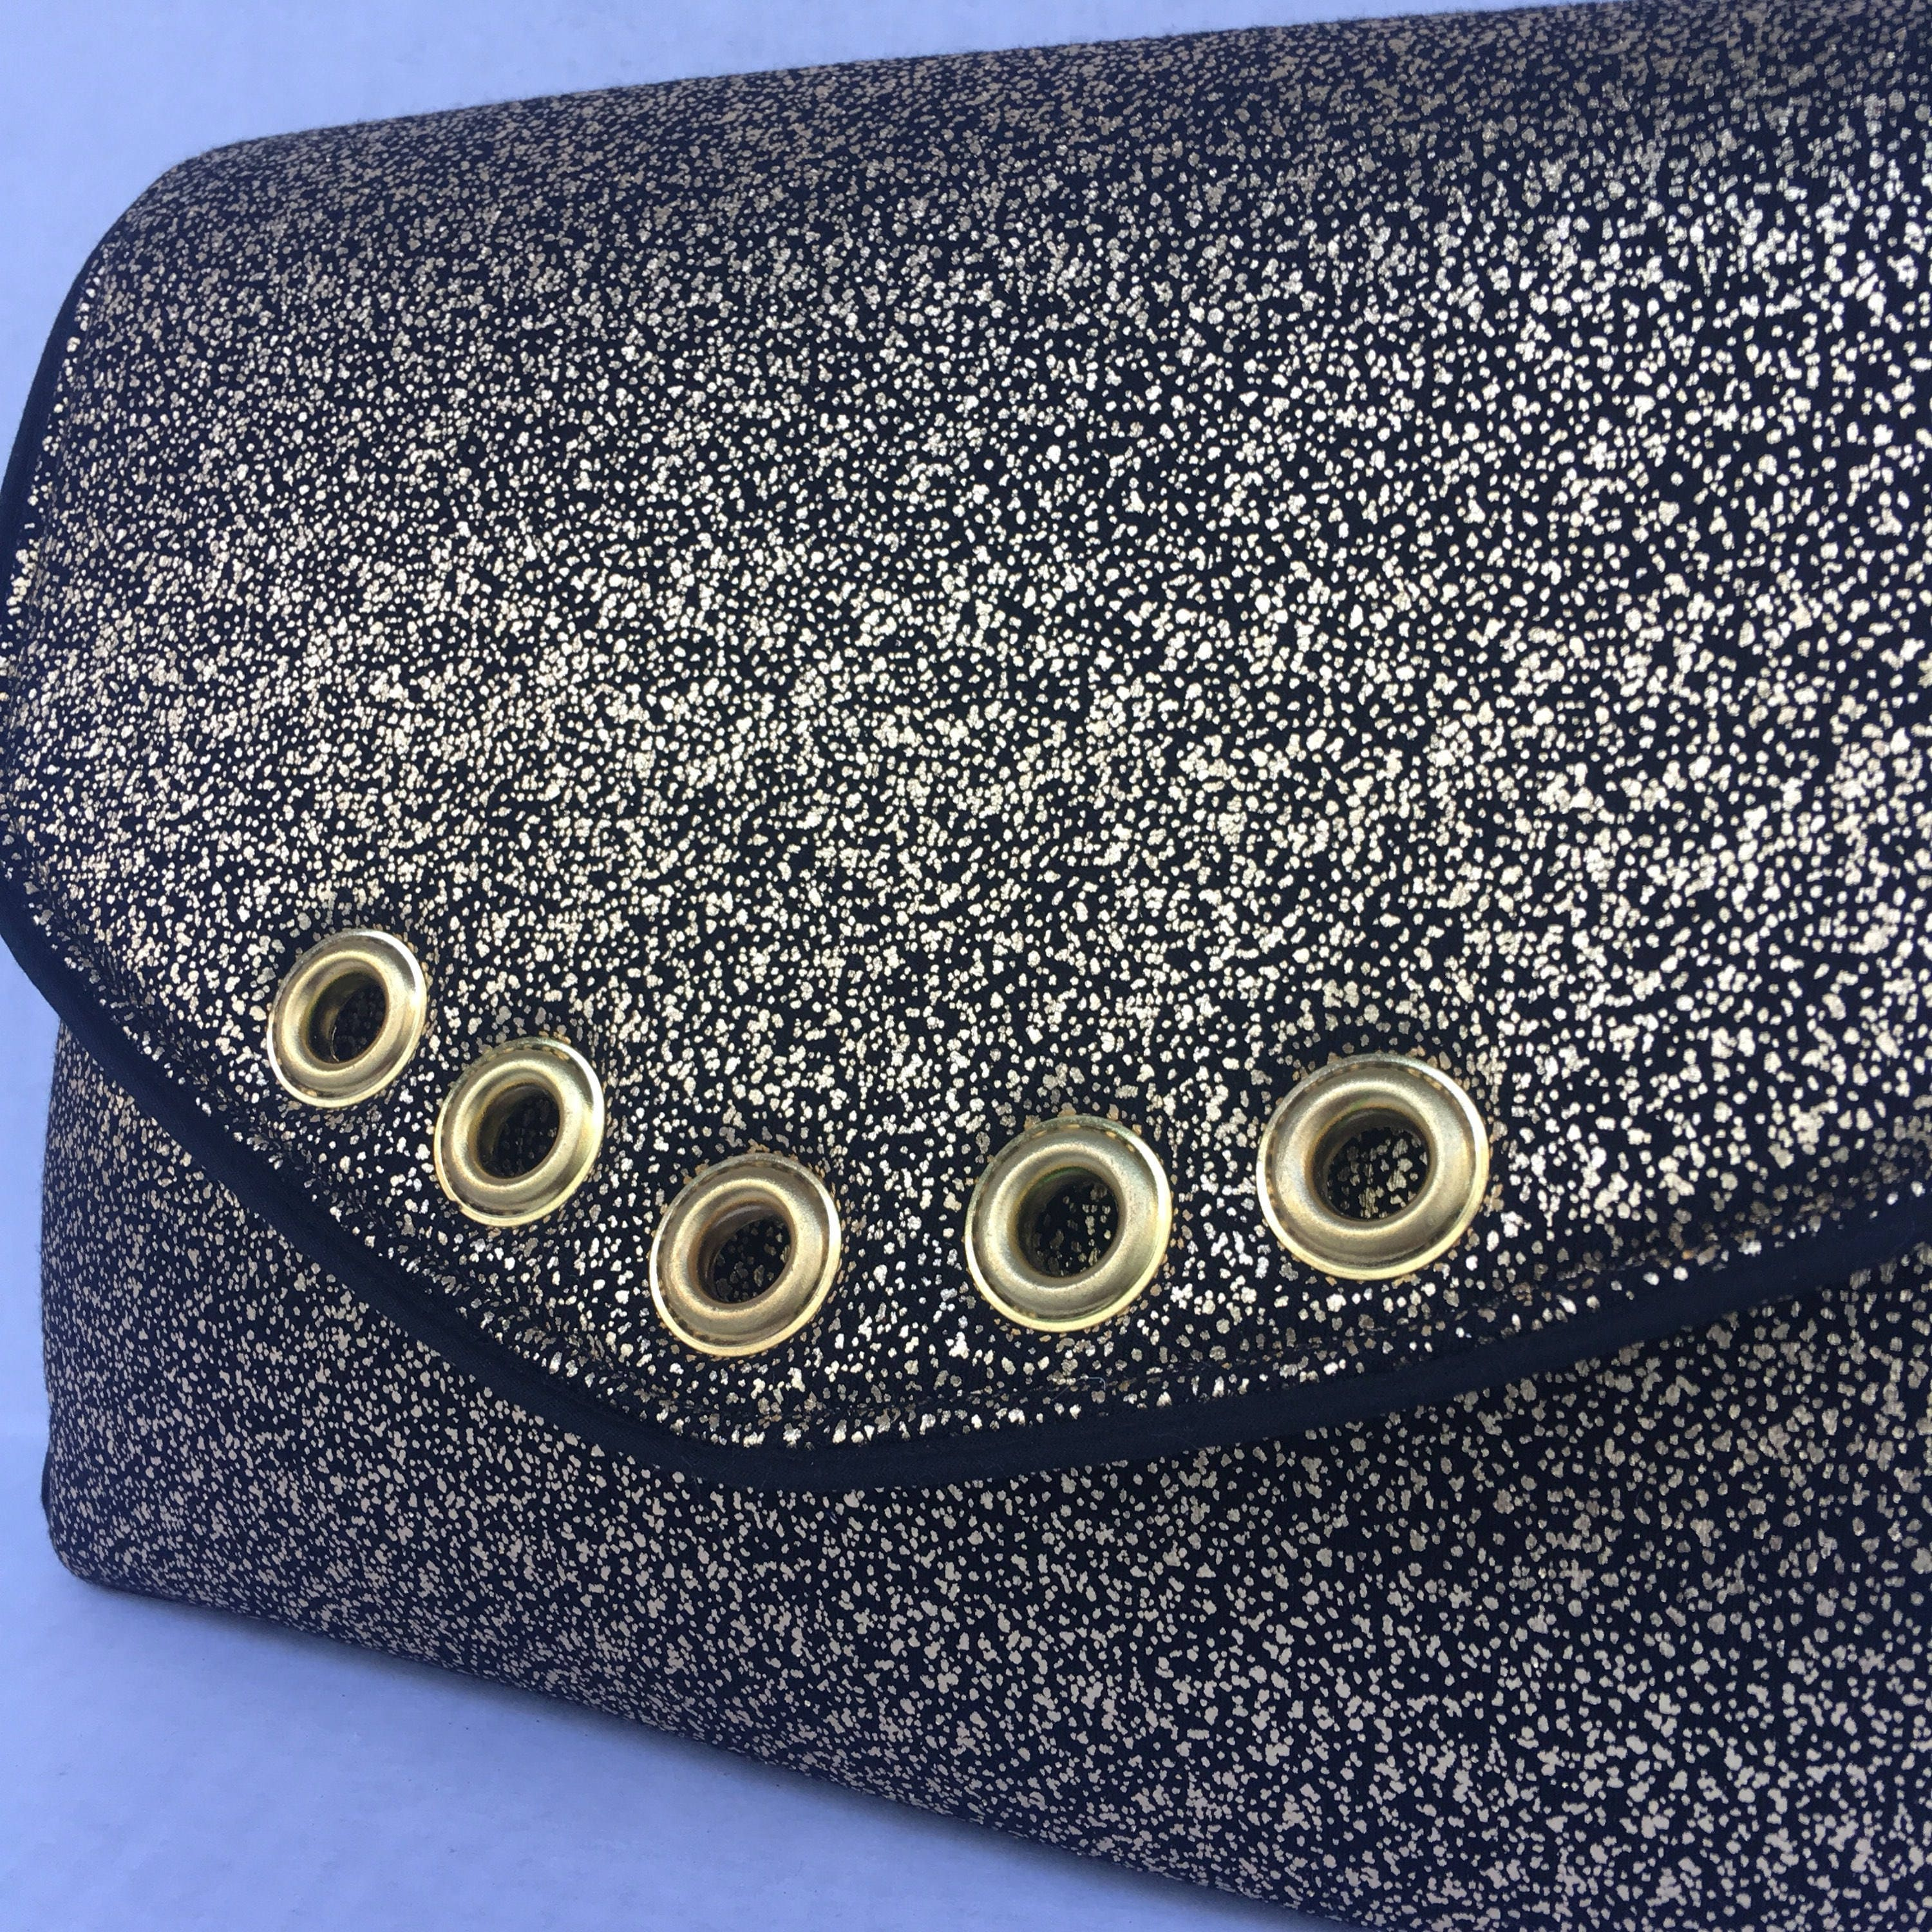 Elegant Sparkling Gold On Black Evening Bag Clutch With Fashion Brown Zoom